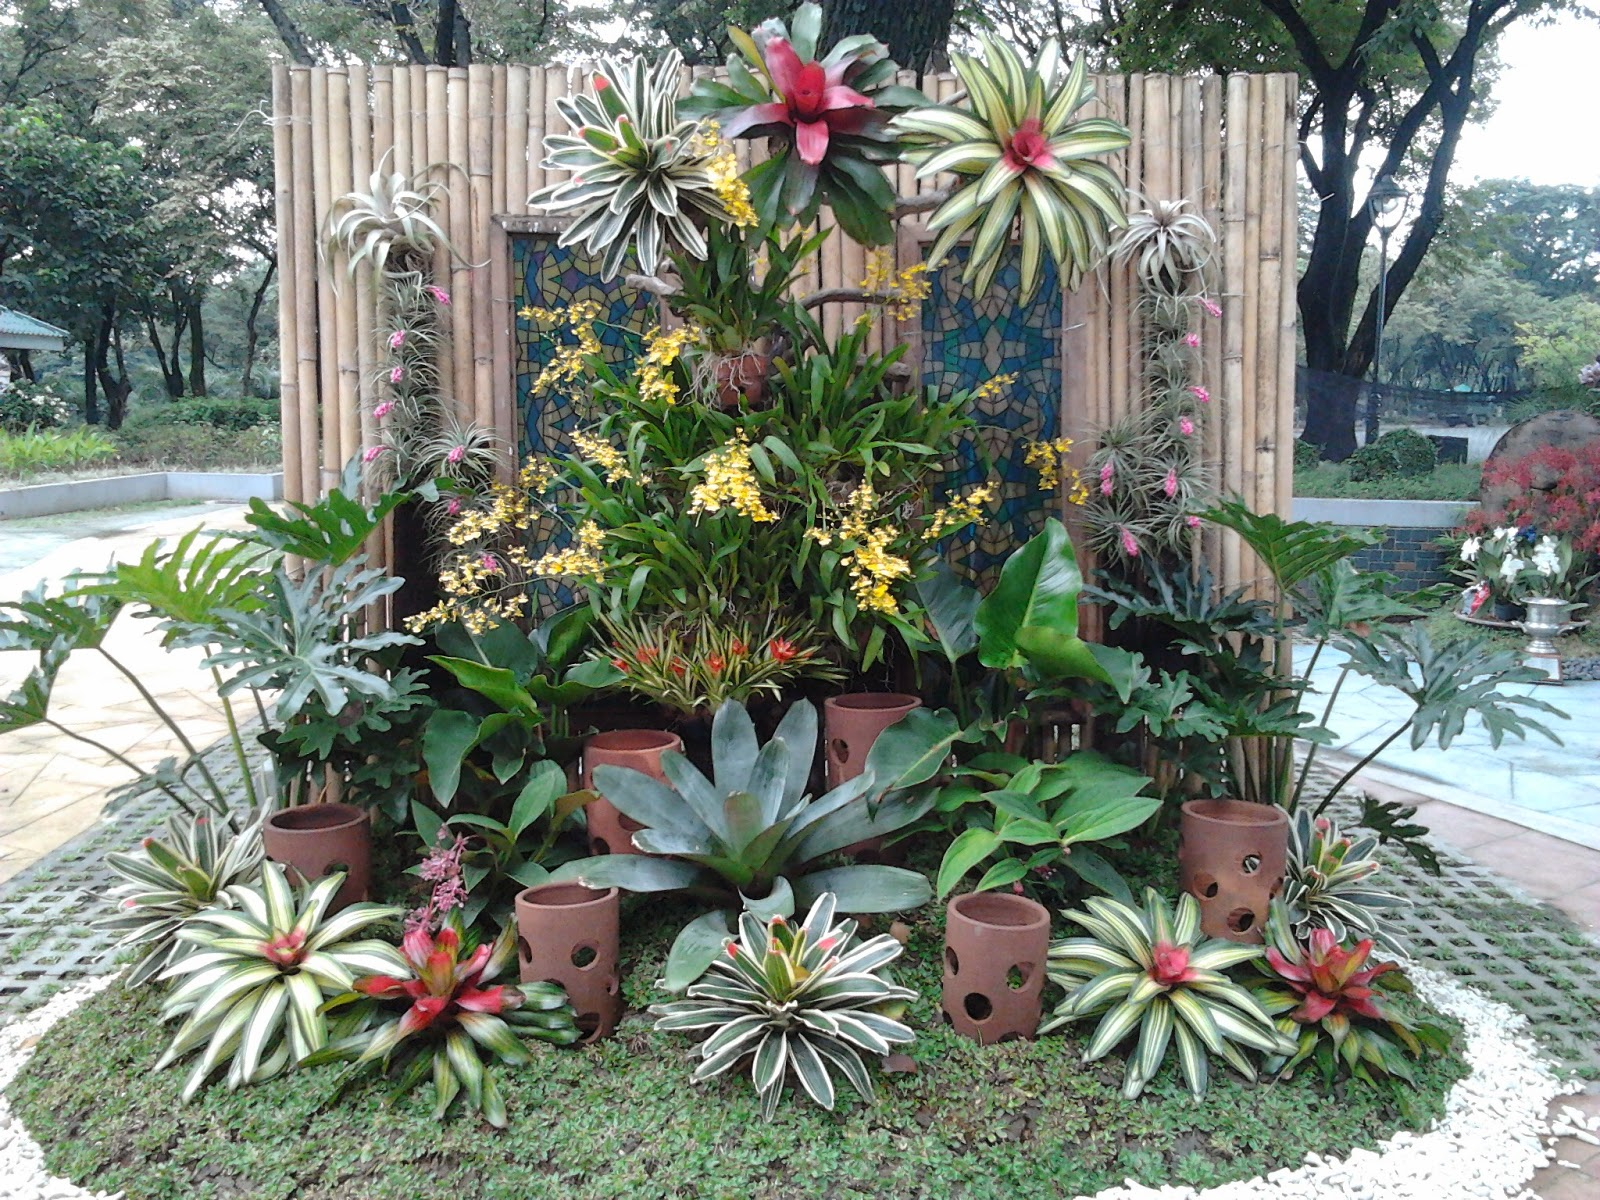 philippine orchid events february 2015